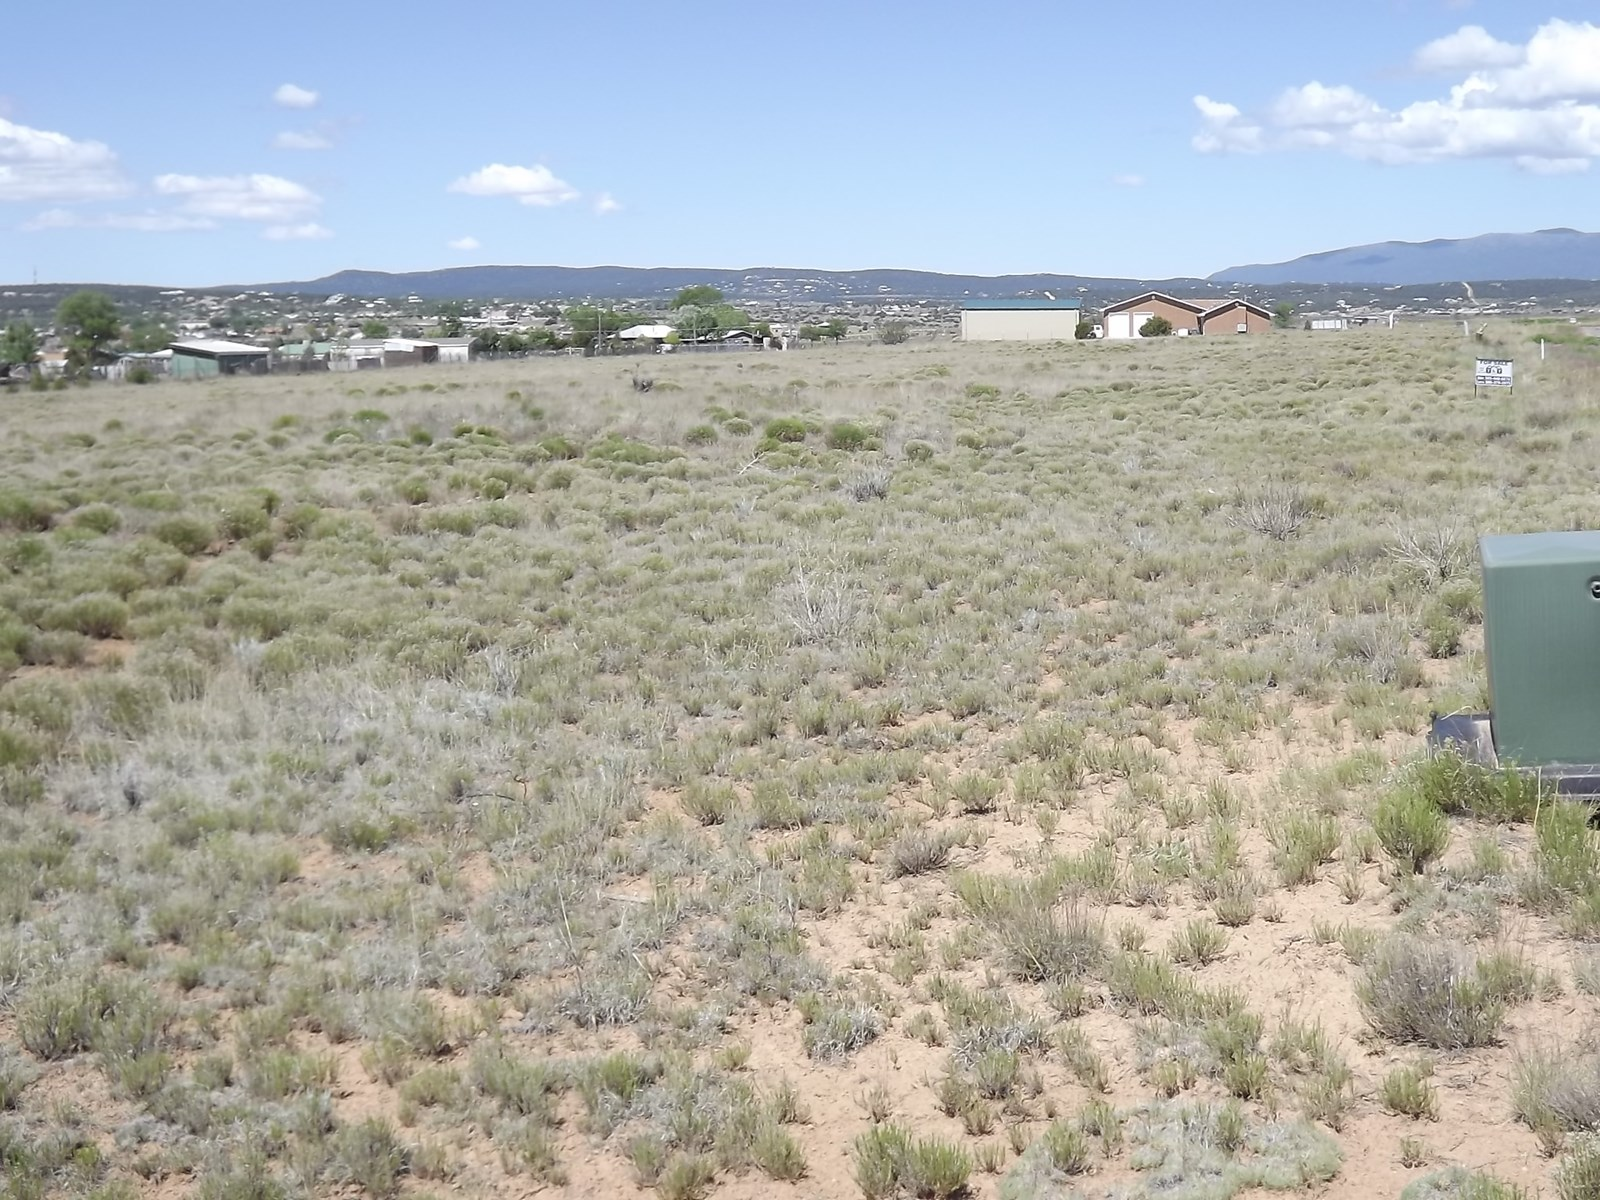 Edgewood NM Sandia Airpark 1.99 Acre Lot For Sale